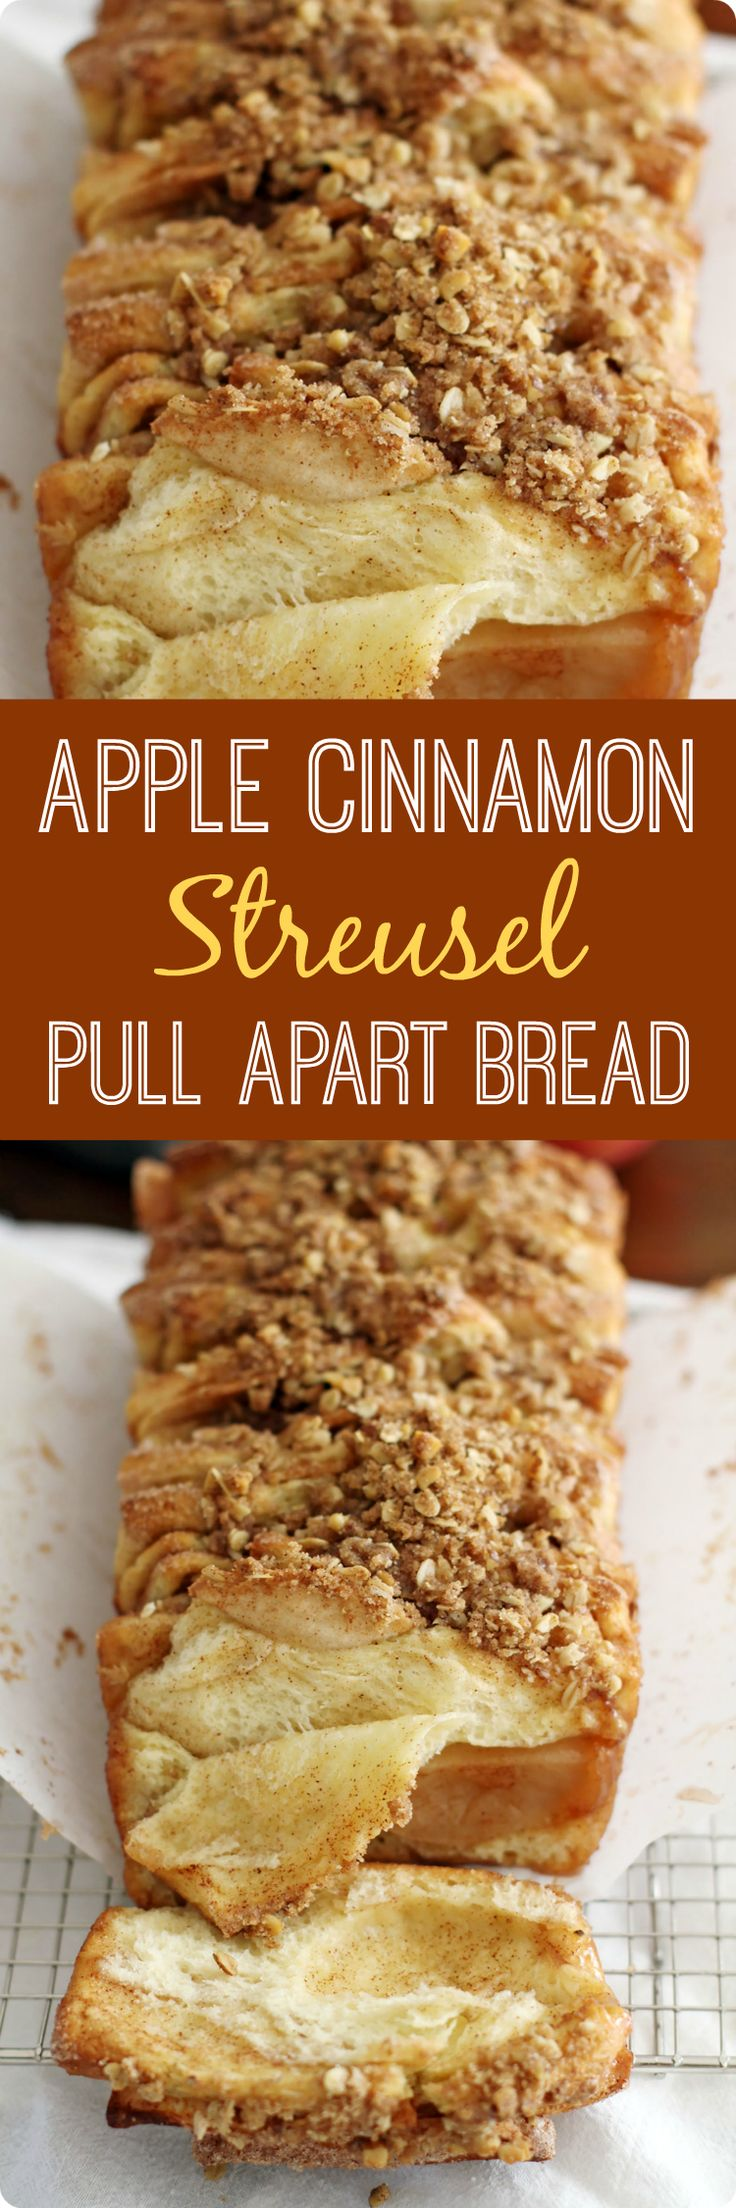 This Apple Cinnamon Streusel Pull-Apart Bread combines fresh apples, melted butter and a sweet cinnamon-sugar filling tucked between slices of soft bread. With a crumbly, sugary streusel to top it off, it's a deliciously comforting fall baking recipe you'll want to make for you, your family and your friends again and again. Find recipe at redstaryeast.com.